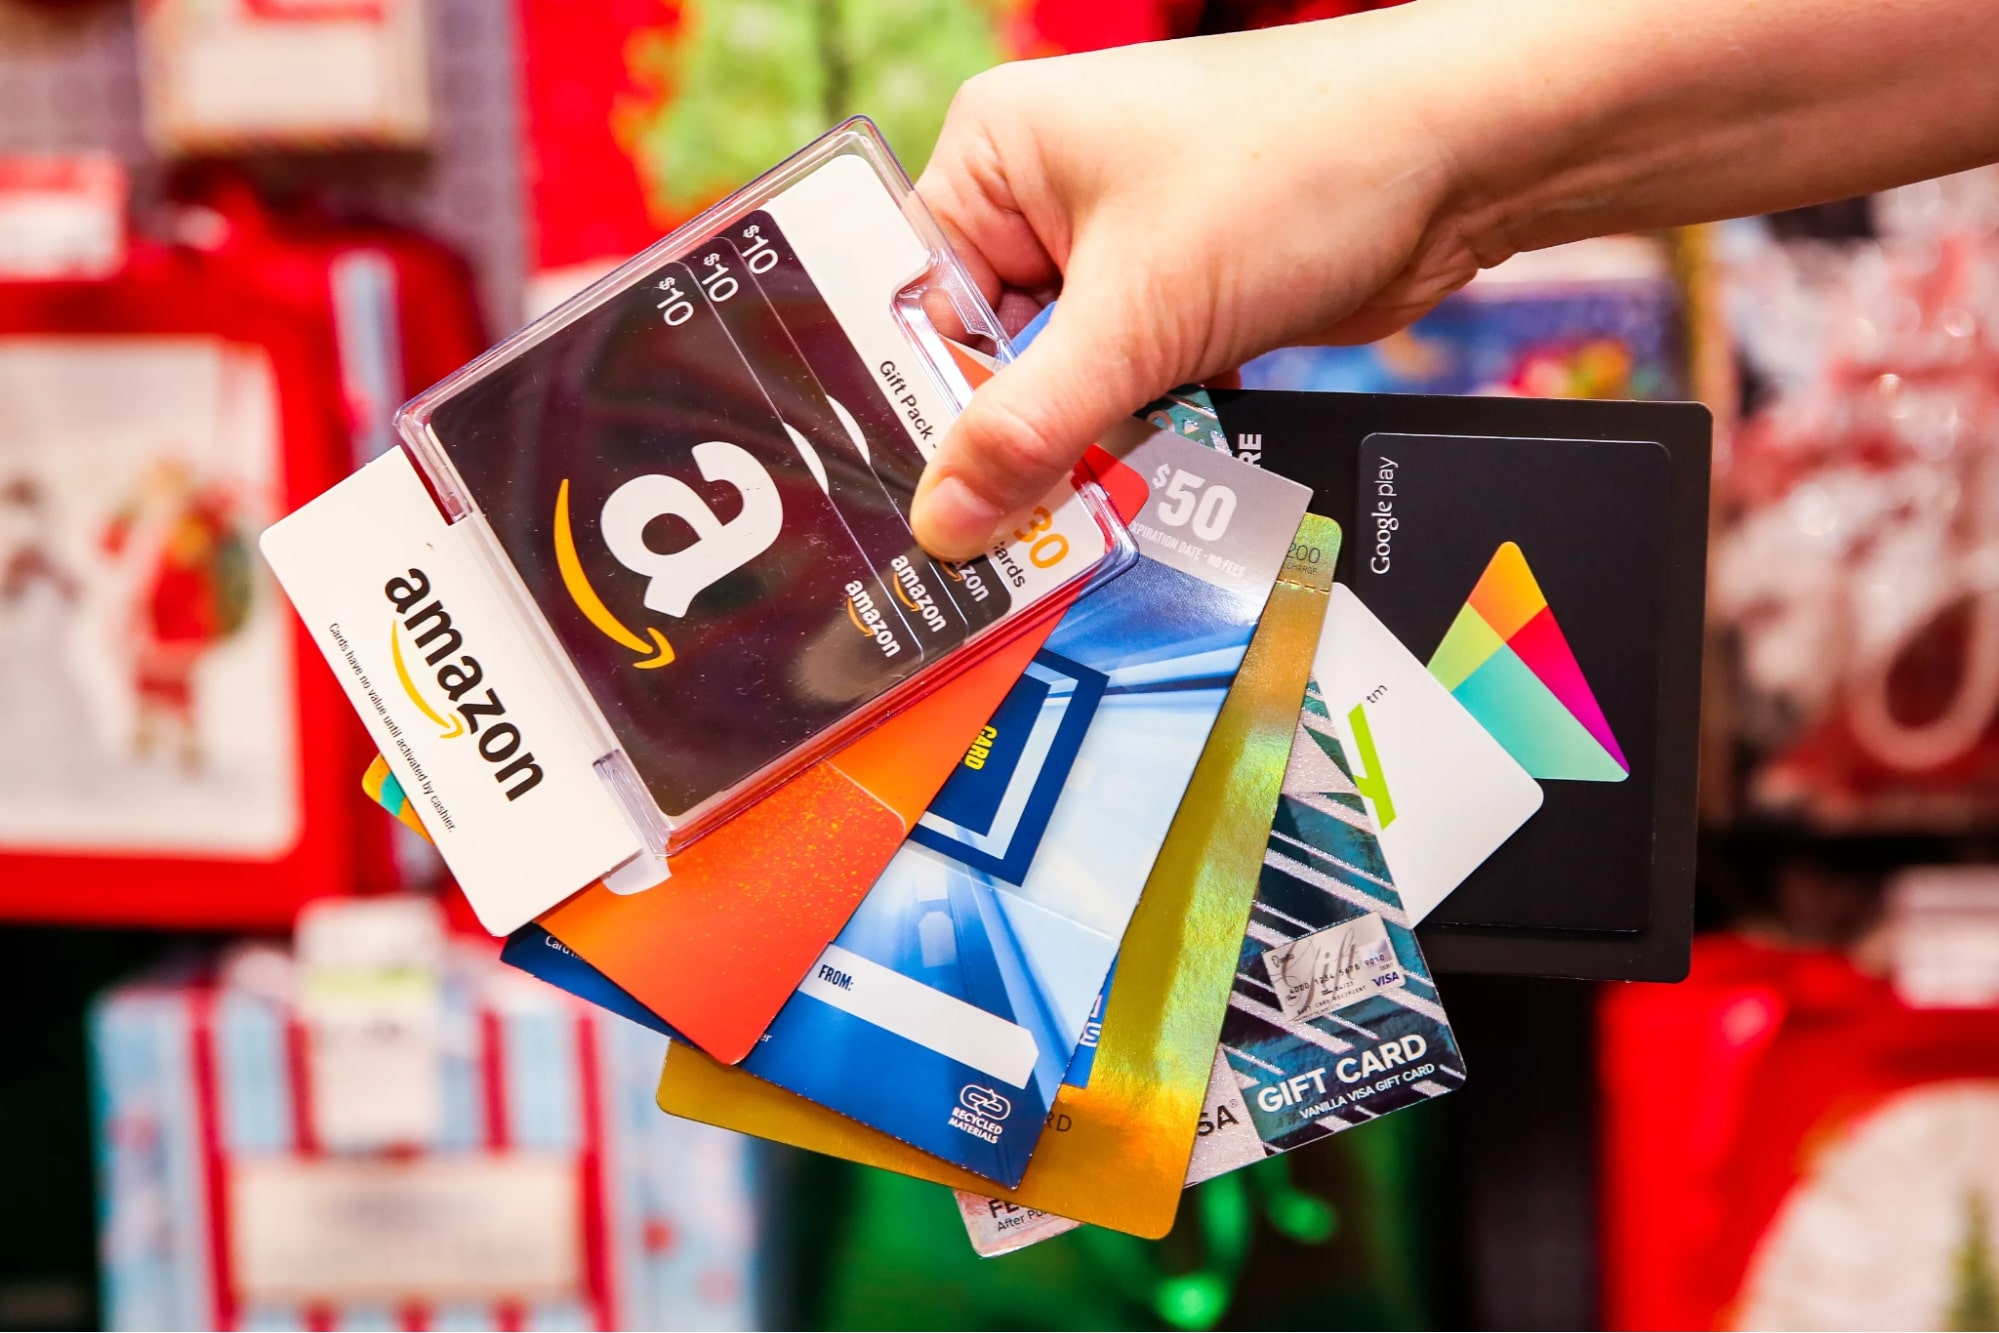 Promote gift cards